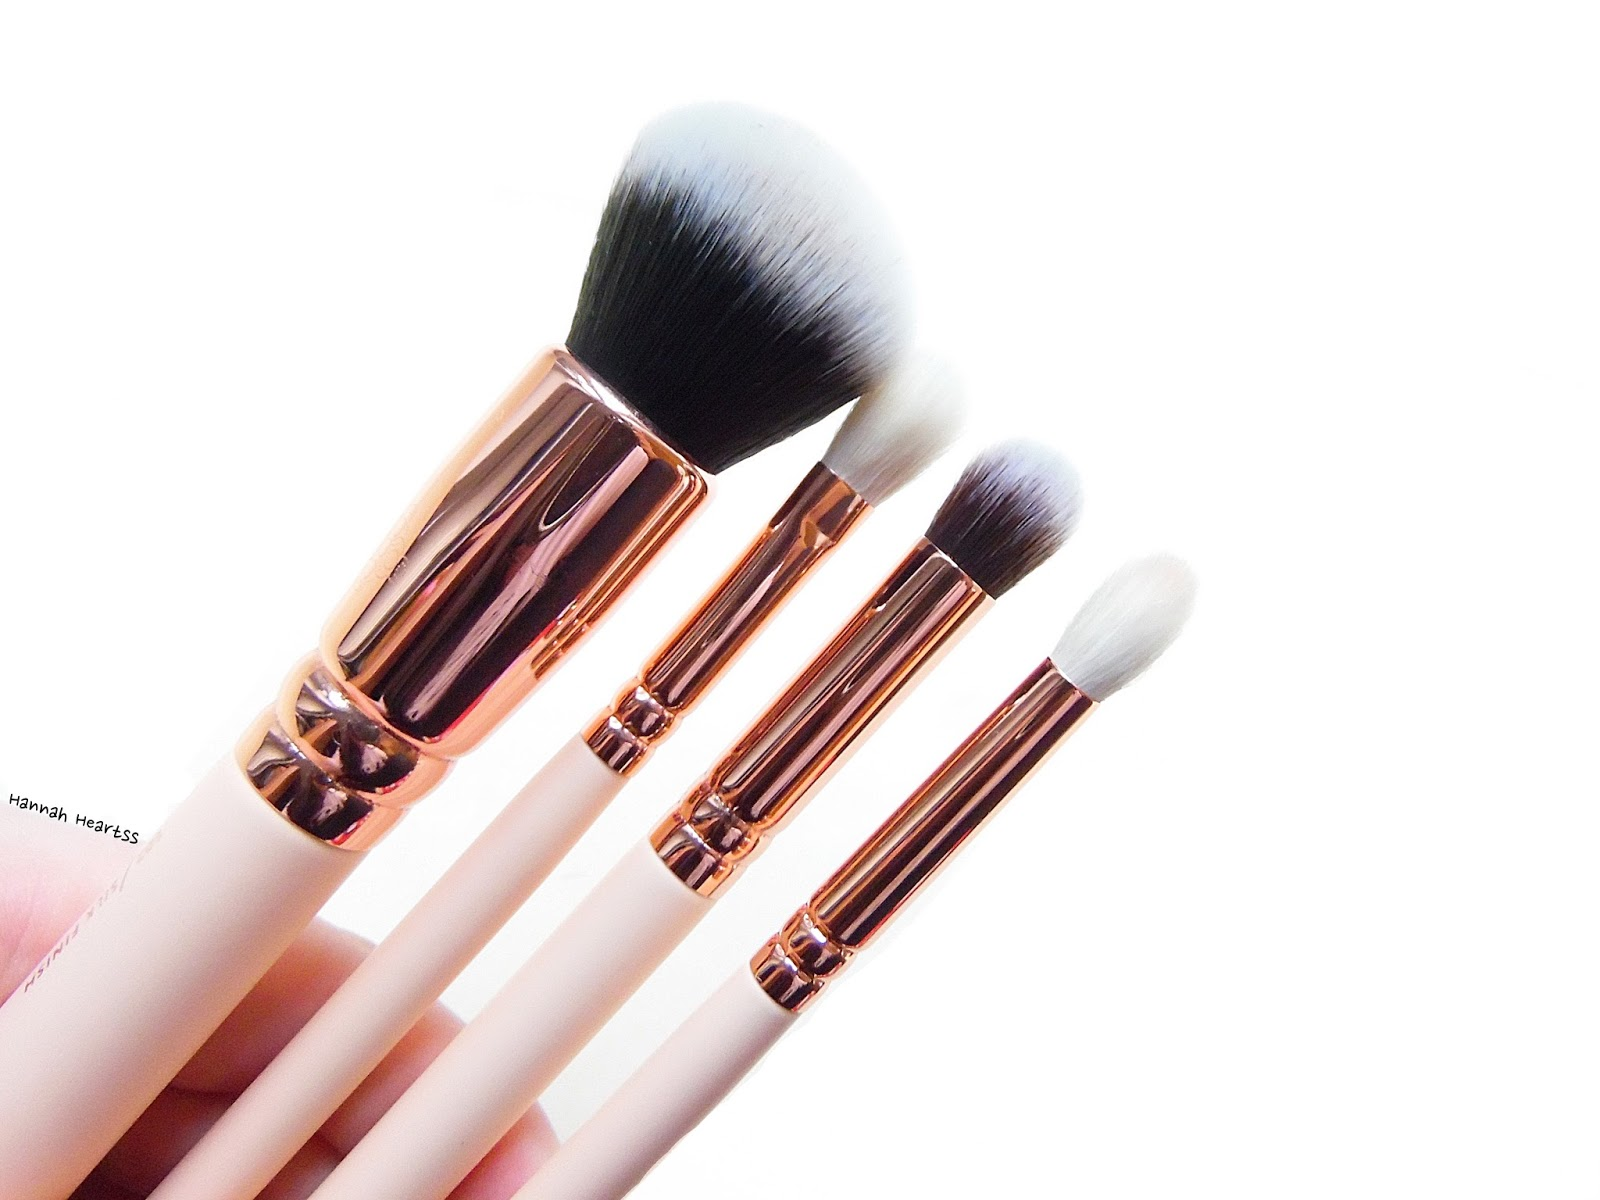 Zoeva Individual Rose Golden Vol. 2 Brushes